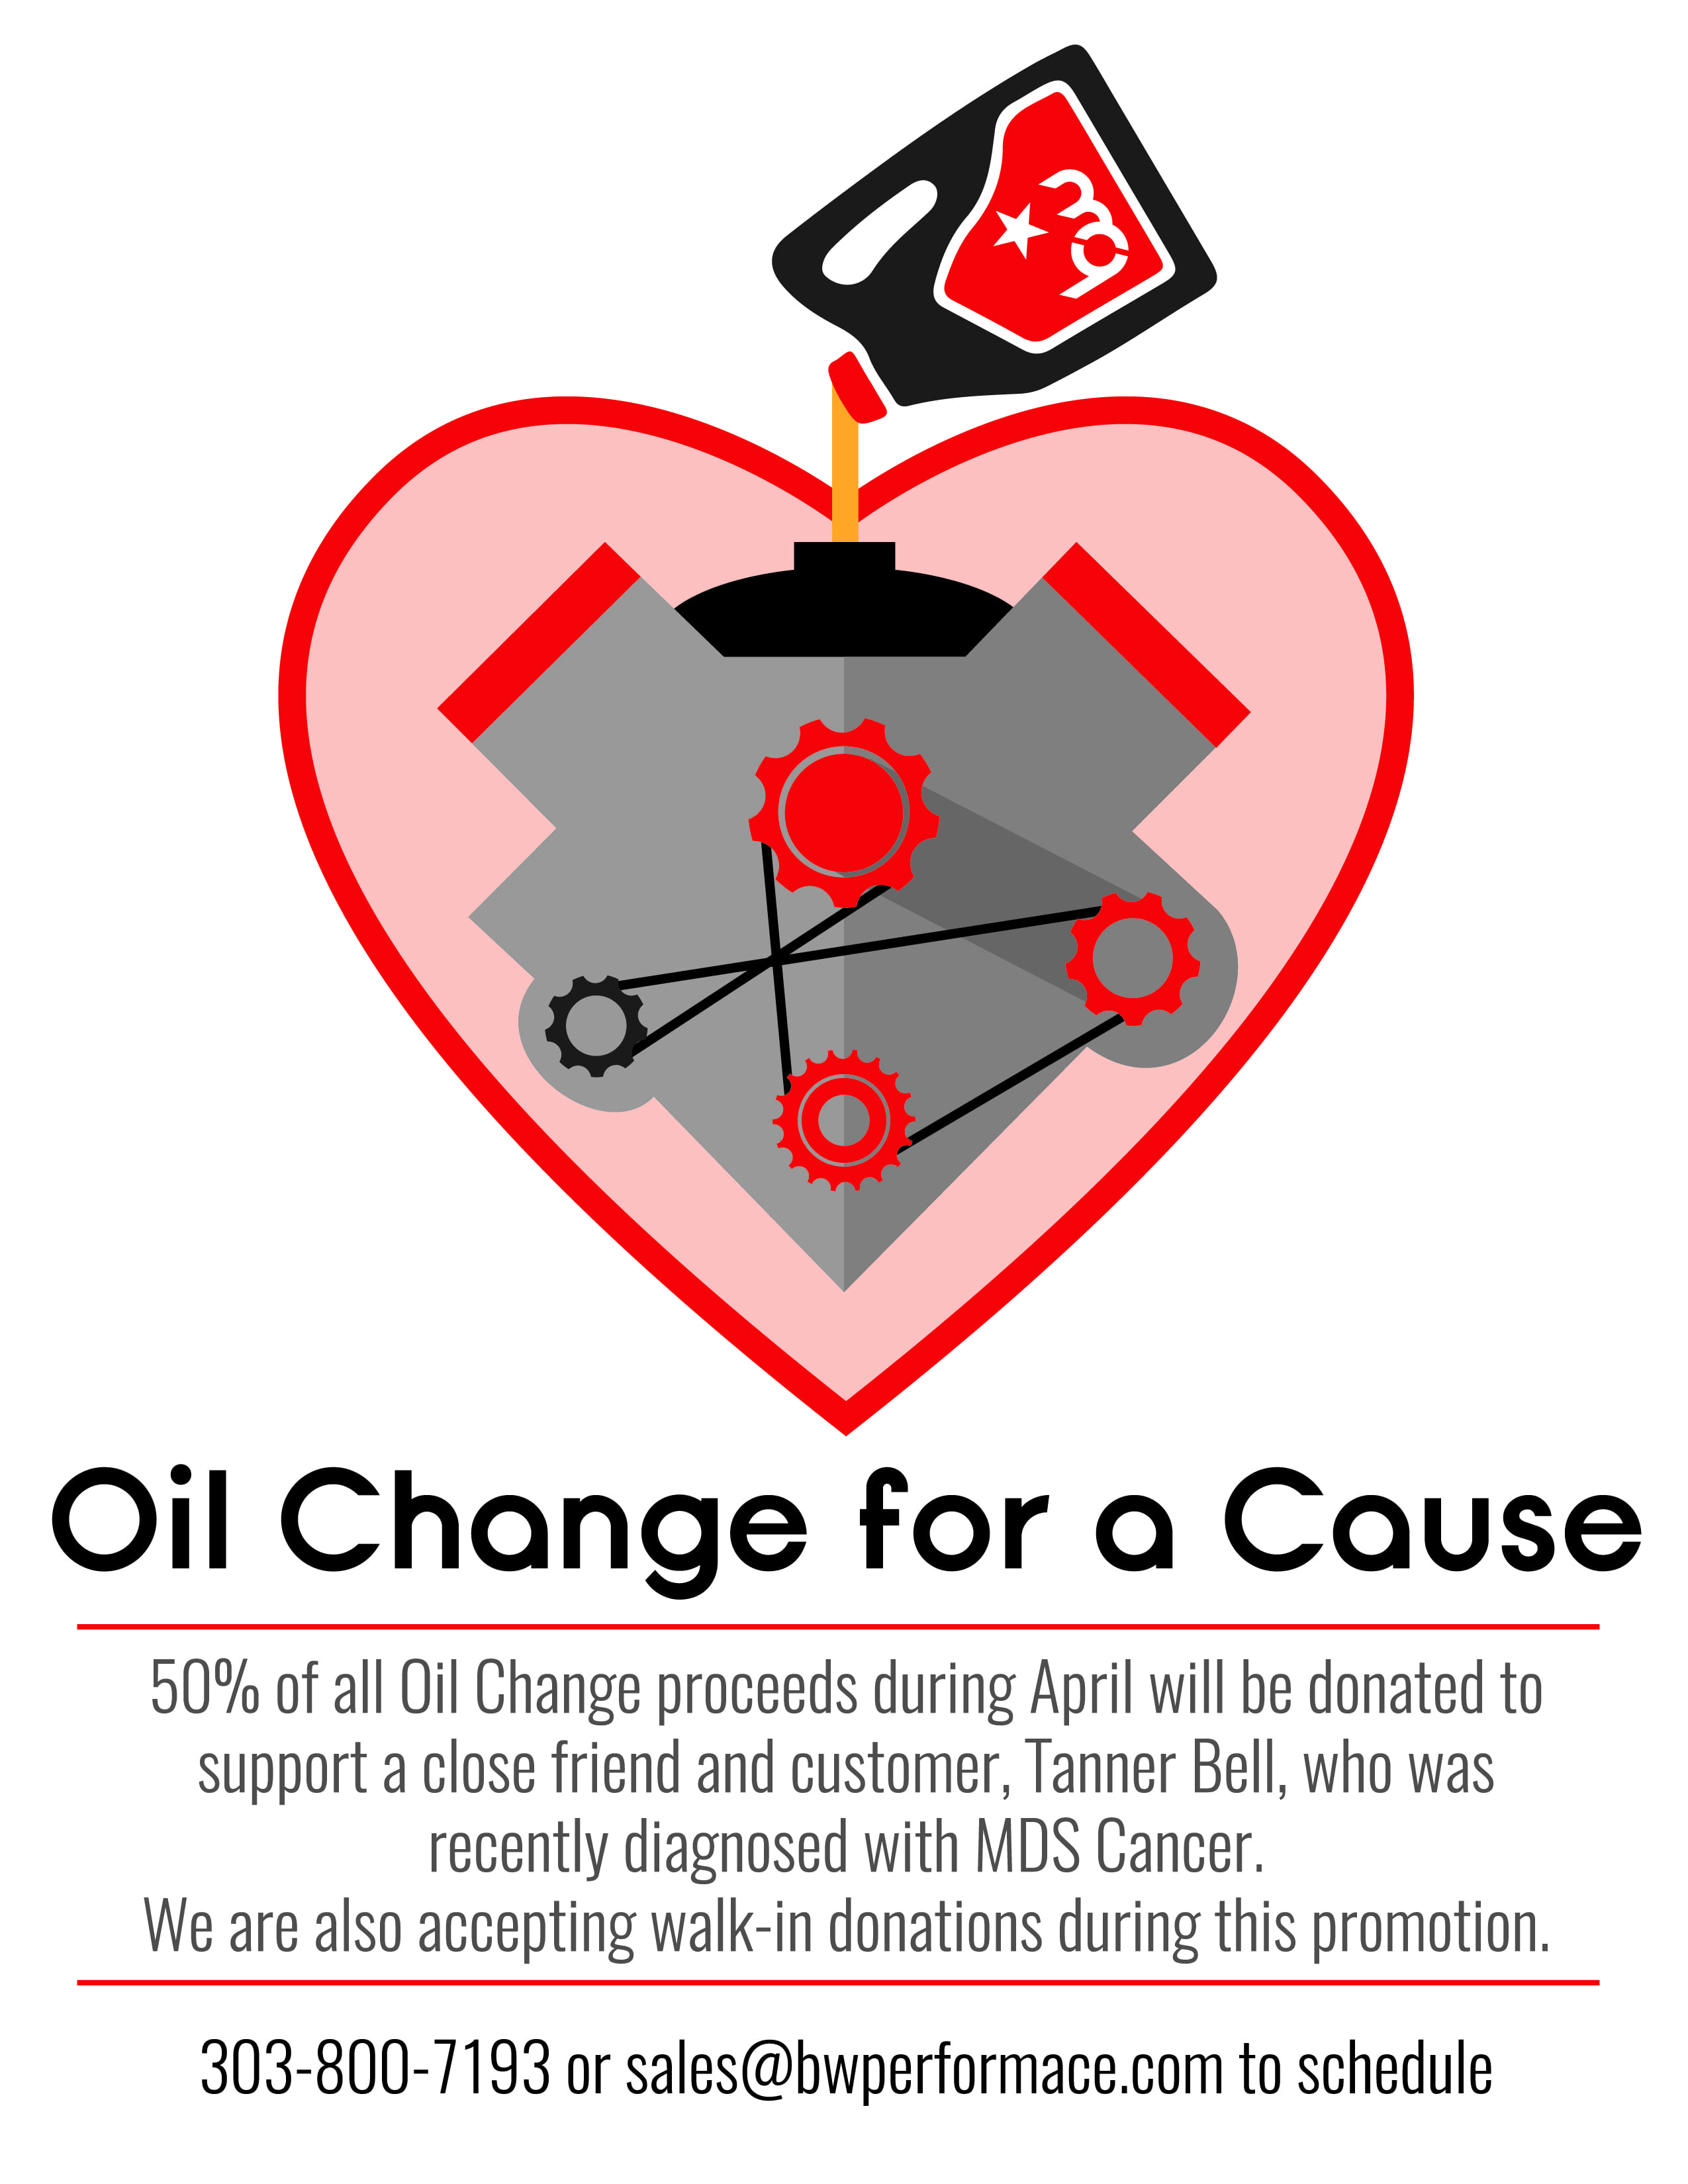 April's Oil Change for a Cause